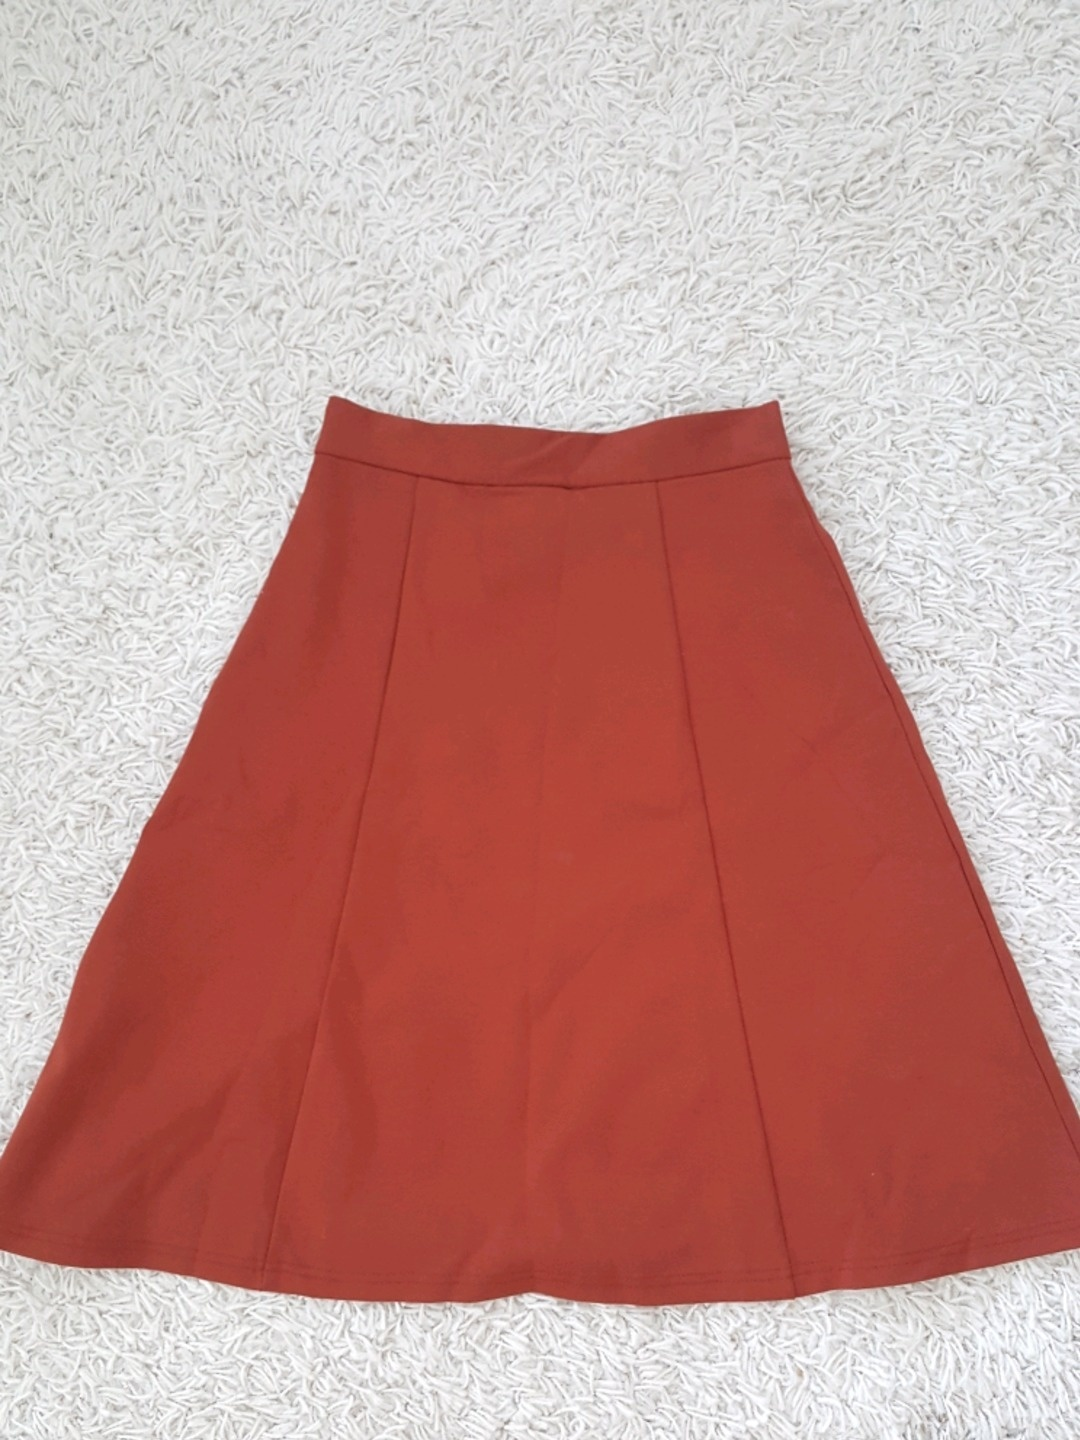 Women's skirts - ANNA FIELD photo 2